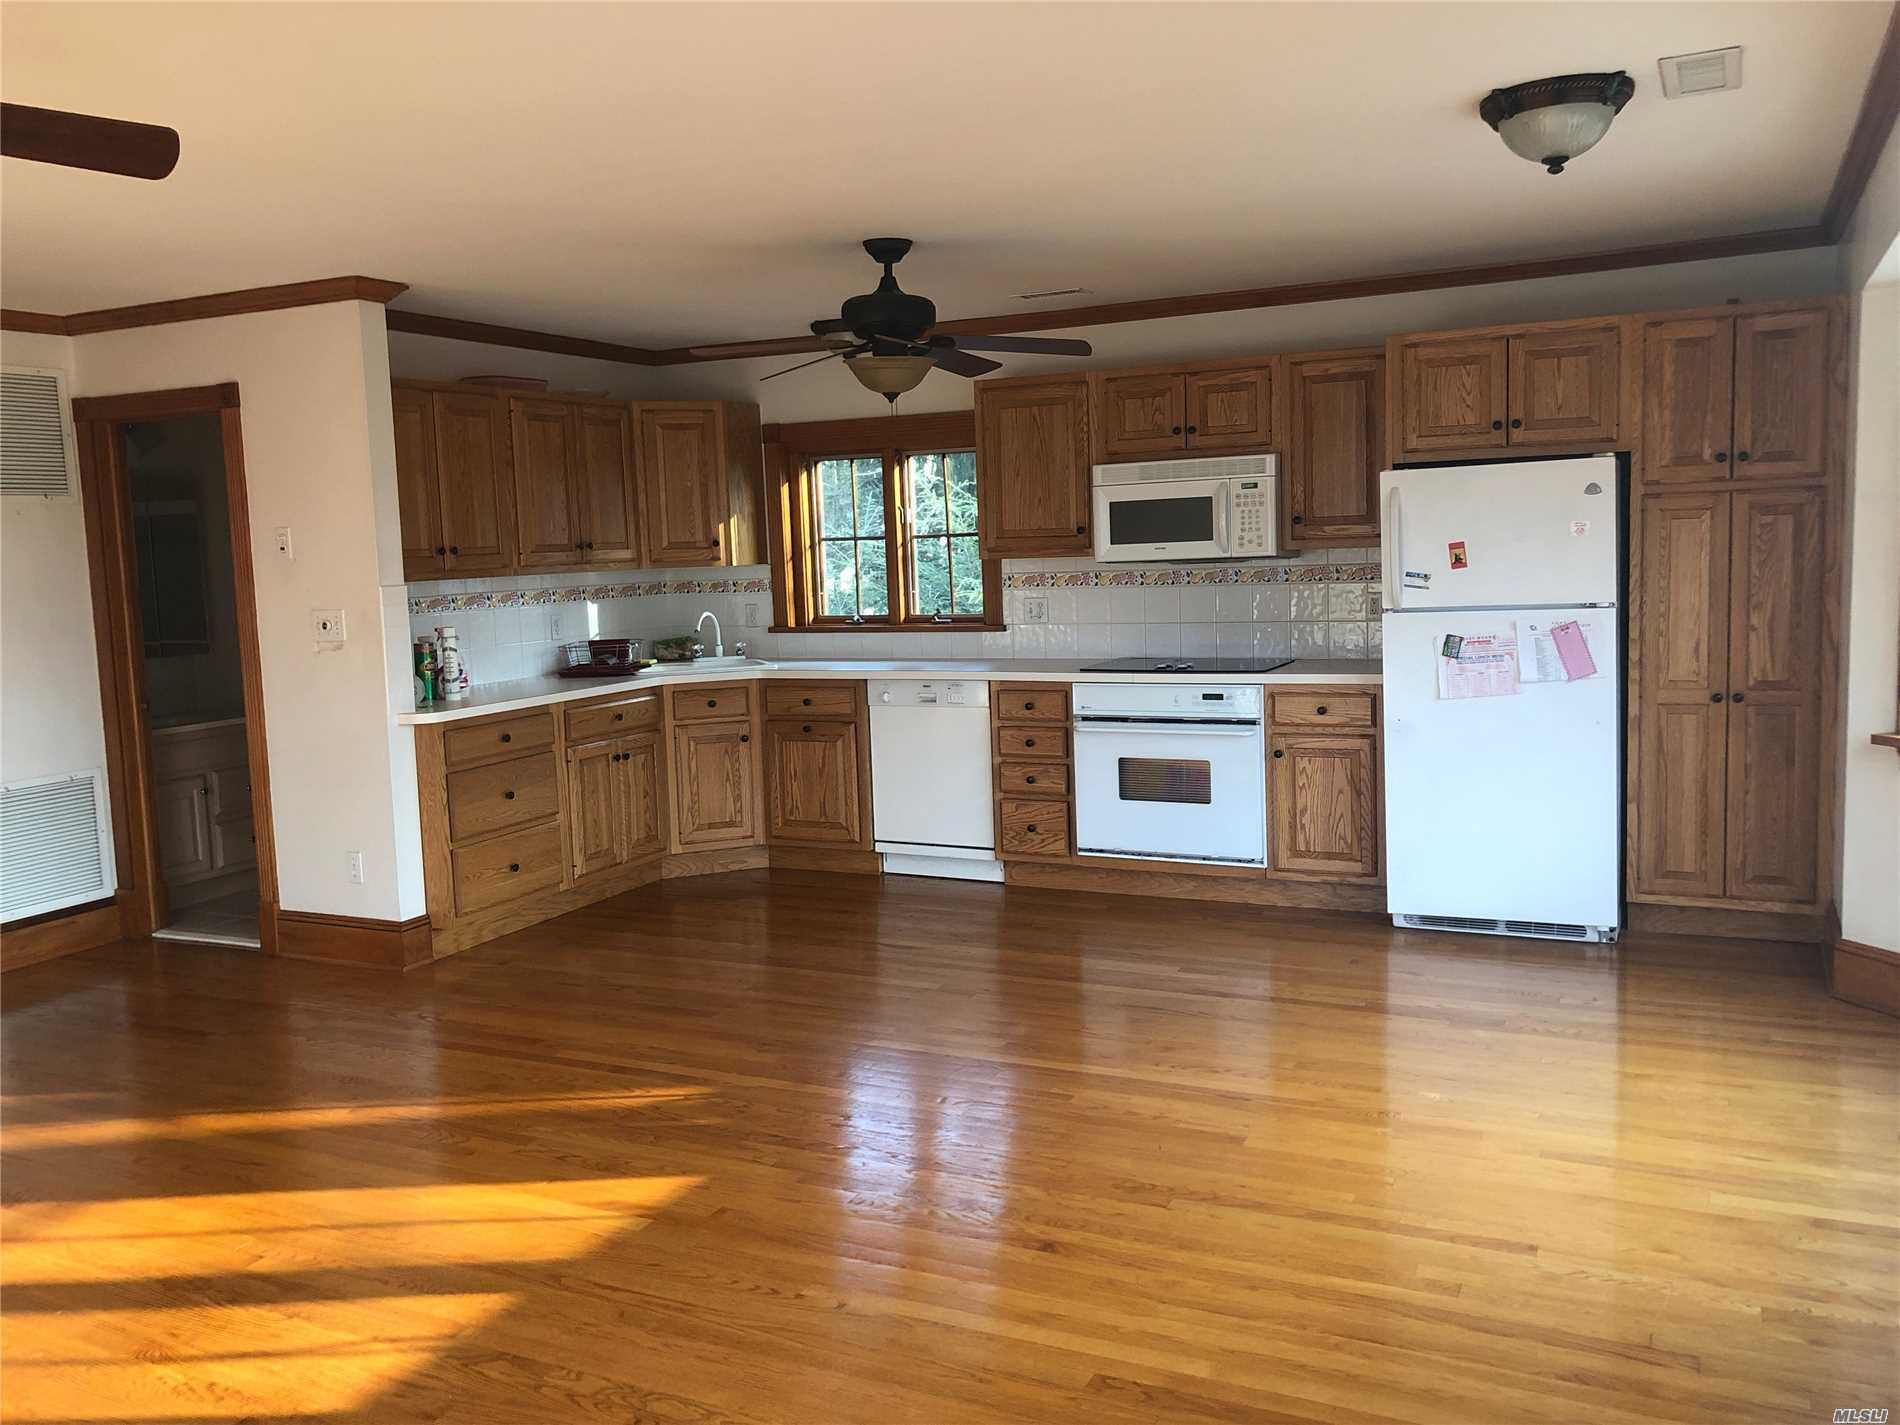 SPACIOUS 2 BEDROOM 2 BATH APARTMENT IN PRIME NORTHPORT VILLAGE .FULL SIZE UPDATED EAT IN KITCHEN WITH DISHWASHER. PLENTY OF CLOSETS, WASHER/DRYER , CENTRAL AIR CONDITIONIING BEAUTIFUL LIVING ROOM WITH ADDITIONAL GUEST BATHROOM , HARDWOOD FLOORS THROUGHOUT. INCREDIBLE APARTMENT.